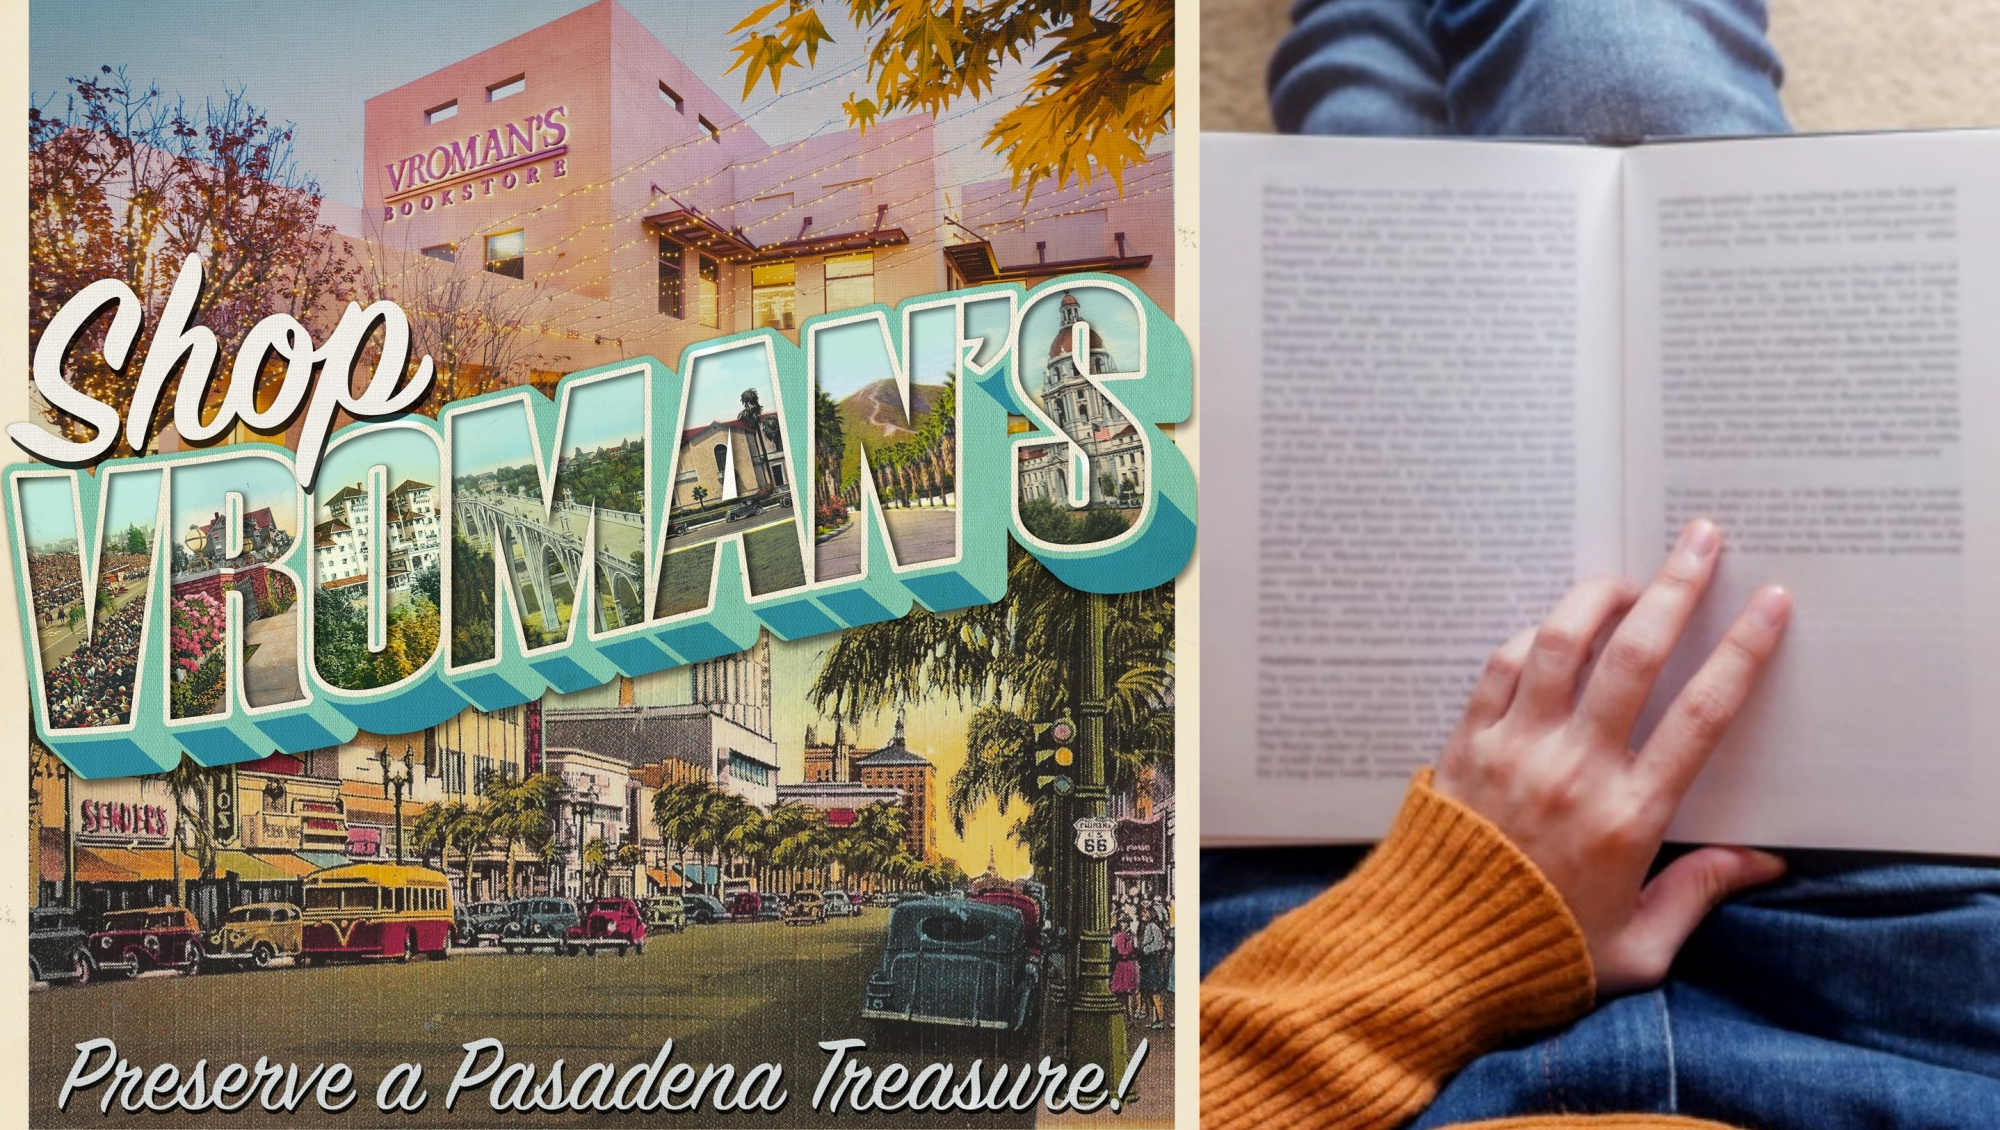 Local Lit Lovers Rally for Vroman's Bookstore – NBC Los Angeles